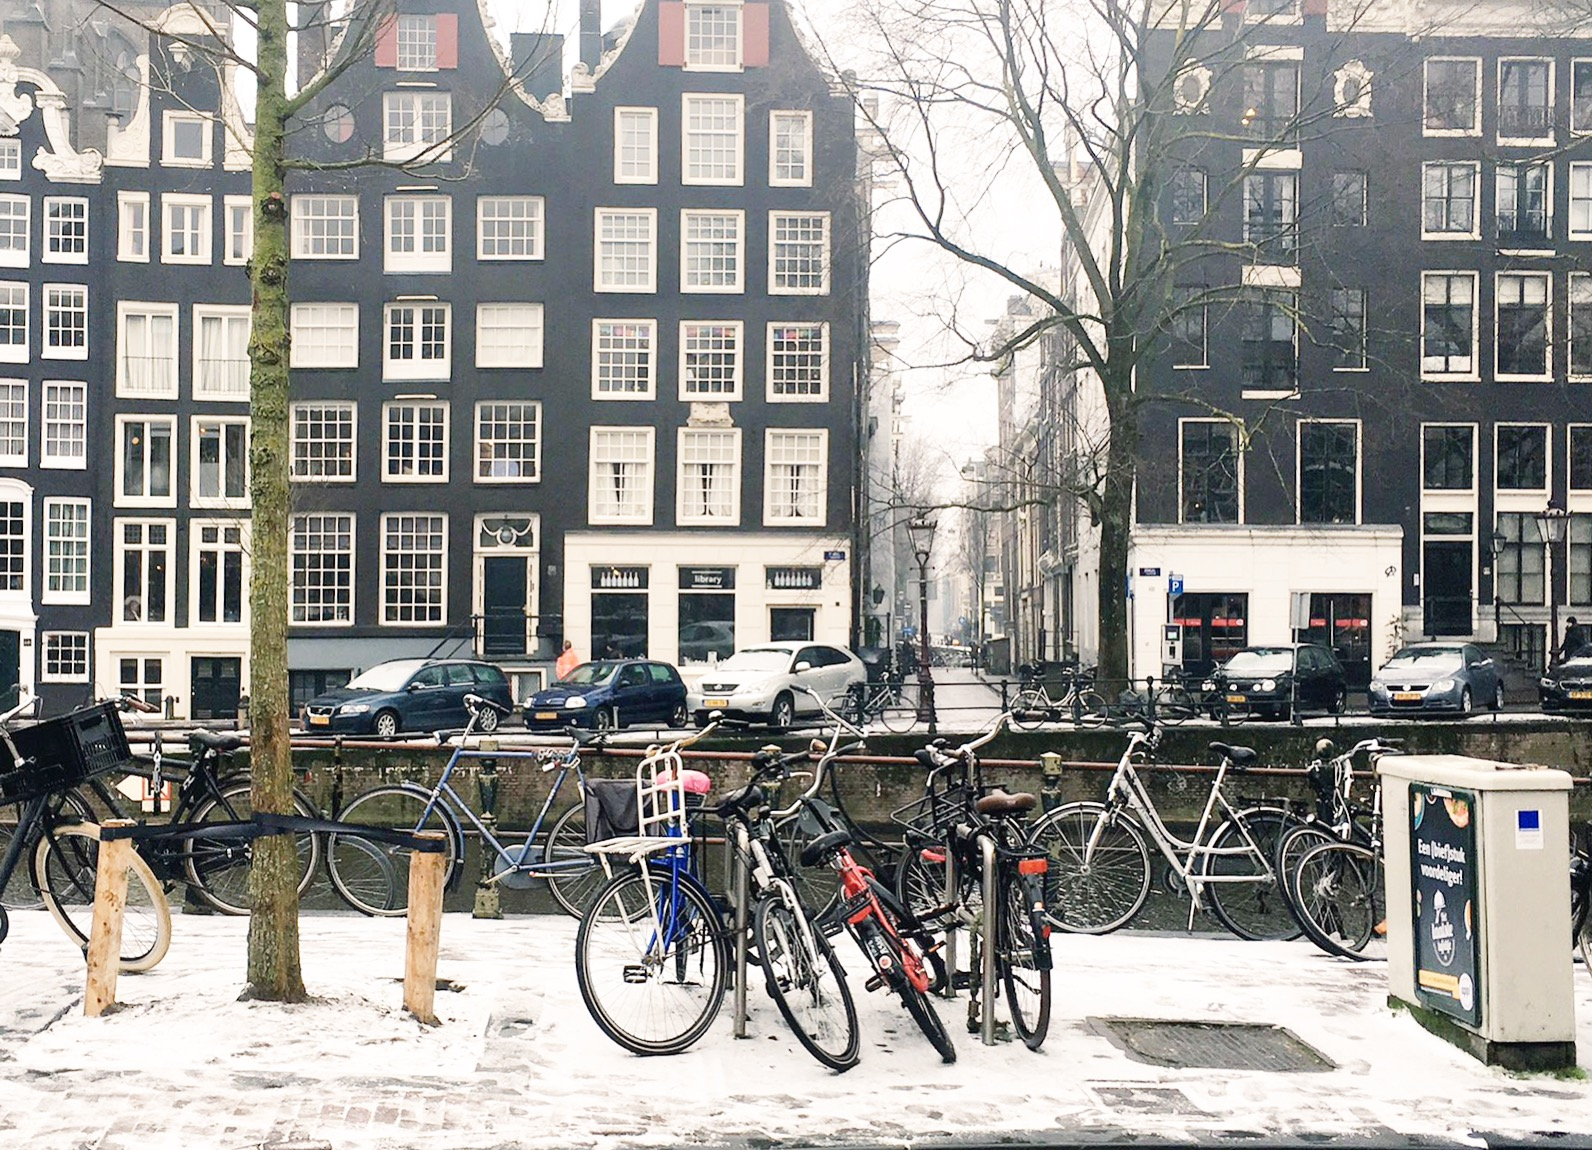 11 Things to do in Amsterdam